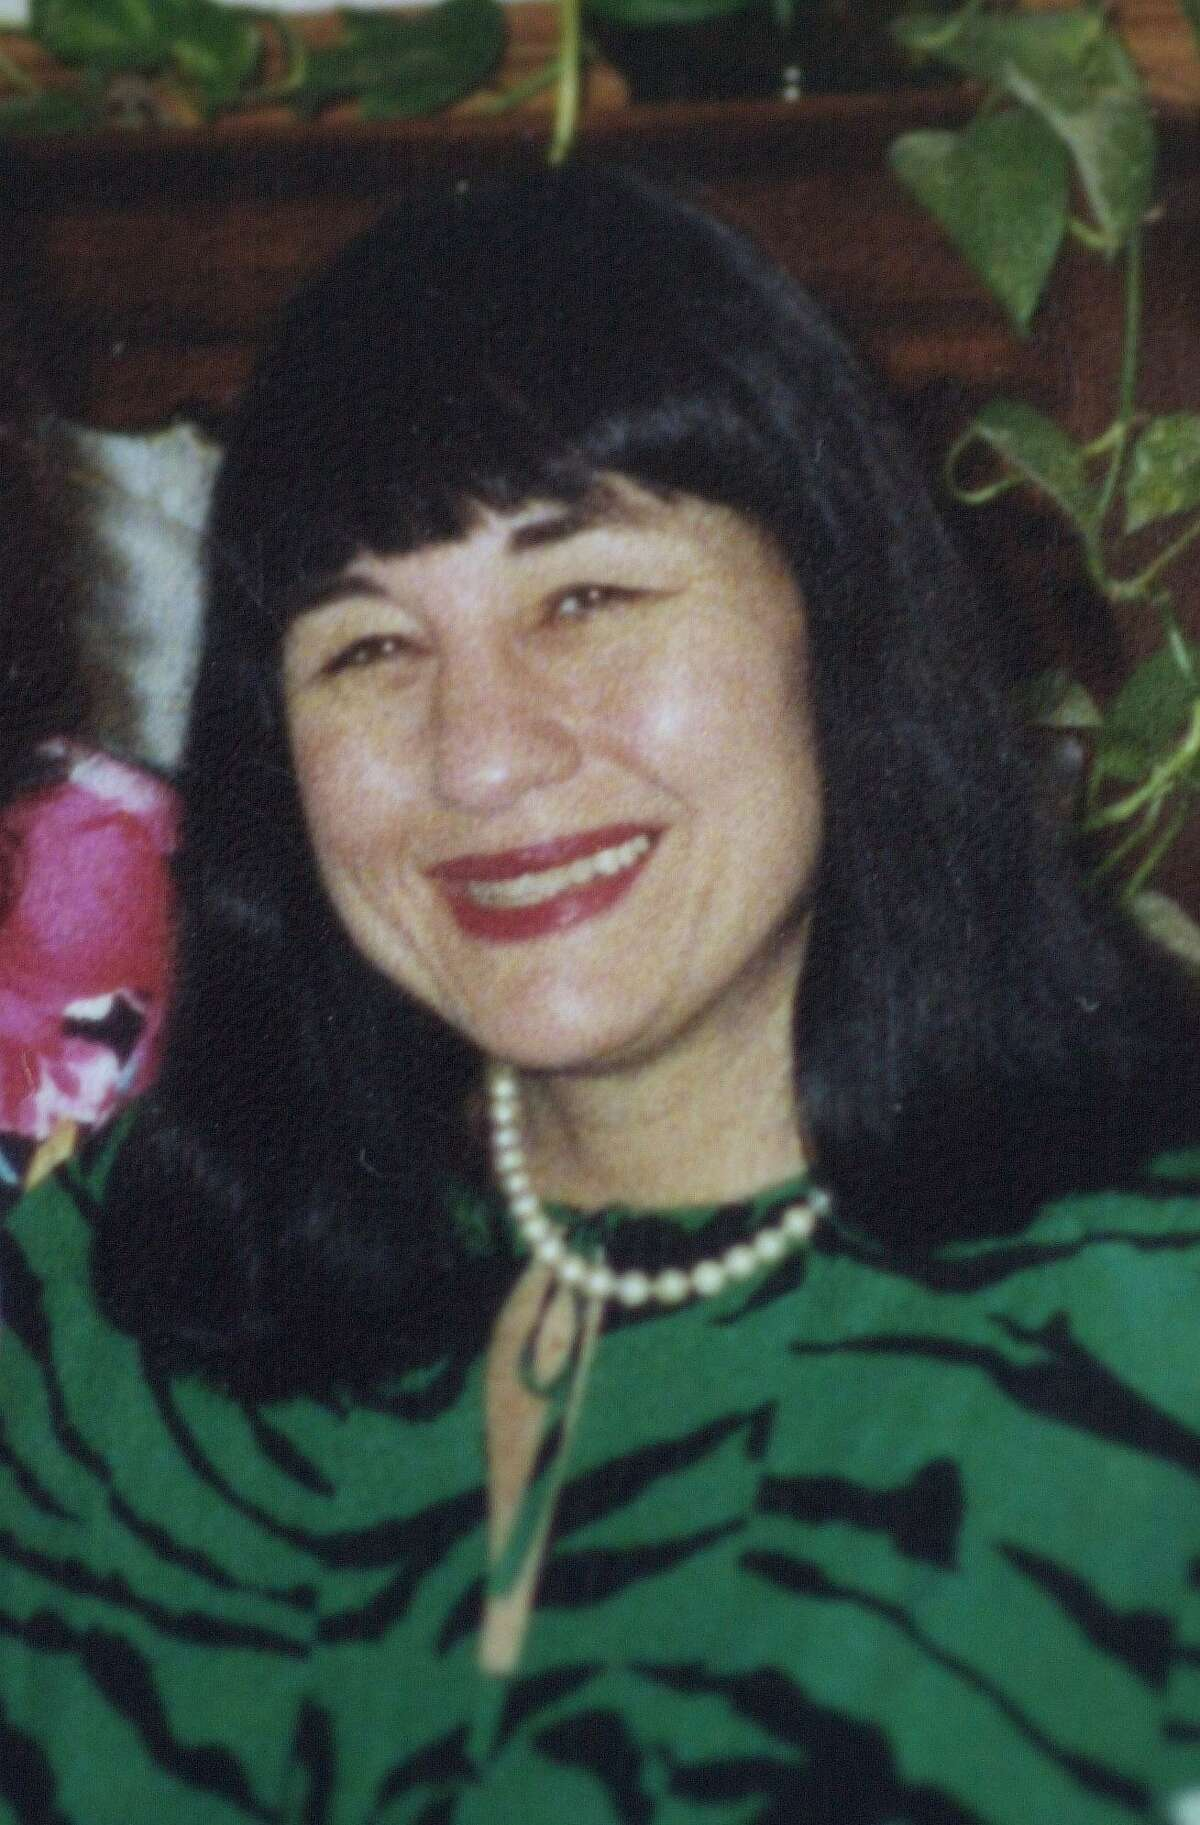 Millionaire Robert Durst was convicted Friday in the homicide of his best friend, Susan Berman, of Los Angeles, seen in this 2000 photo.